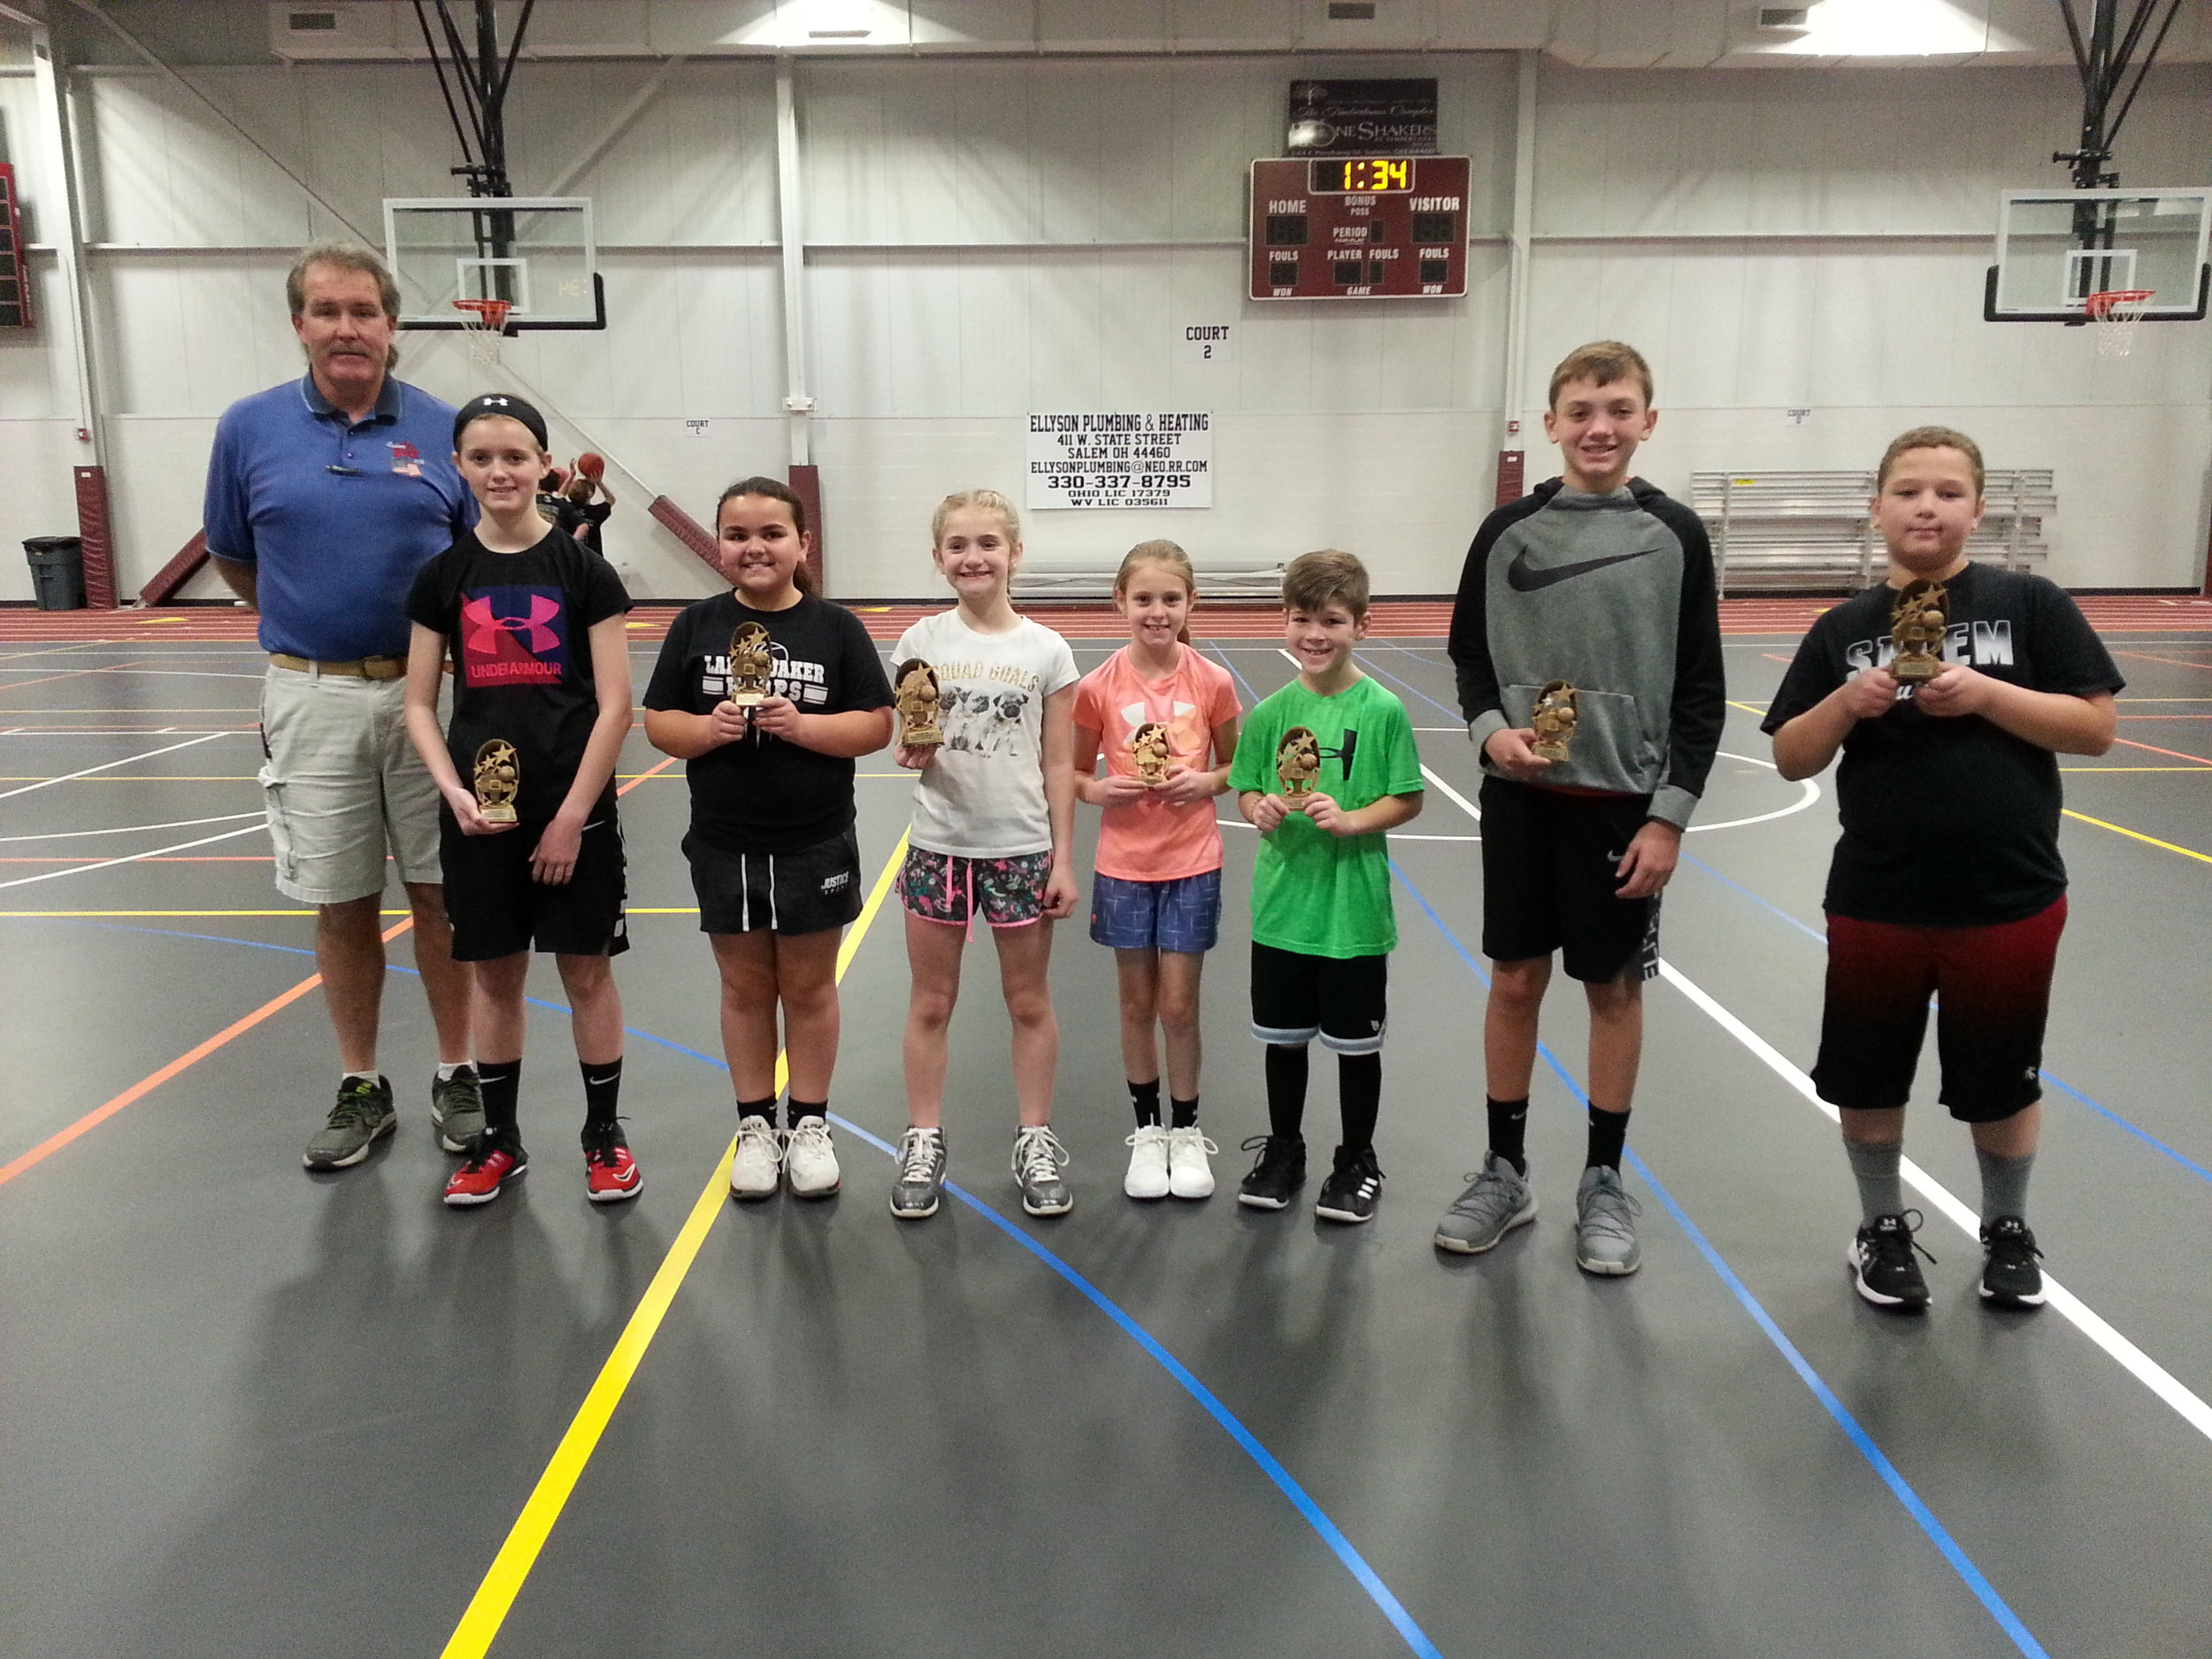 Those pictured left to right are Douglas Rudibaugh, PER and Chairman; Alaina Johnston 1st in girls 12-13, Macey Troy 1st in girls 10-11, Destany Cunningham runner-up and Alivia Ruth 1st in girls 8-9; Blake Bezon 1st in 8-9 boys; Luke Courtney runner-up and Steven Landfried 1st in the boys 12-13. The winners will continue onto the NE District Hoop Shoot contest on Saturday, January 16th at the Ravenna High School.